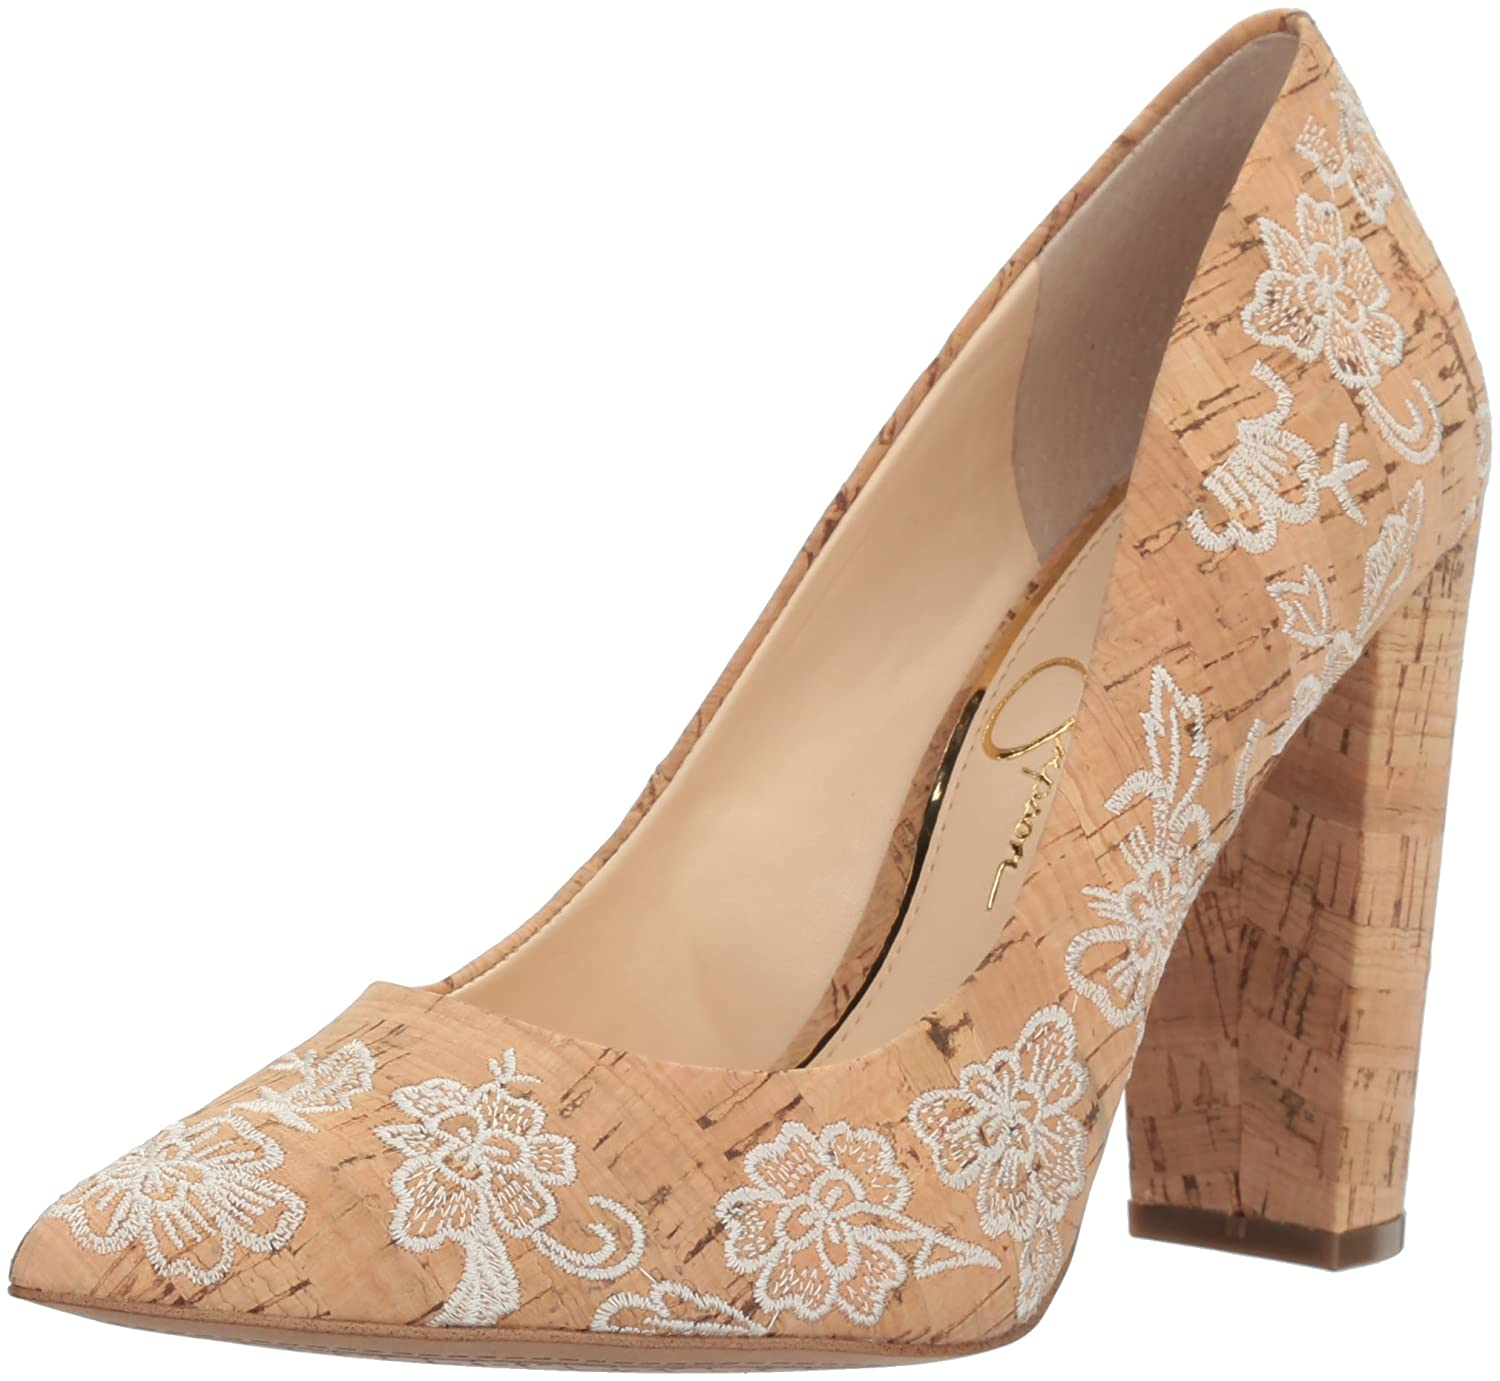 Jessica Simpson Women's Tanysha Dress Pump B01N7IAX8D 9.5 B(M) US|Natural Cream